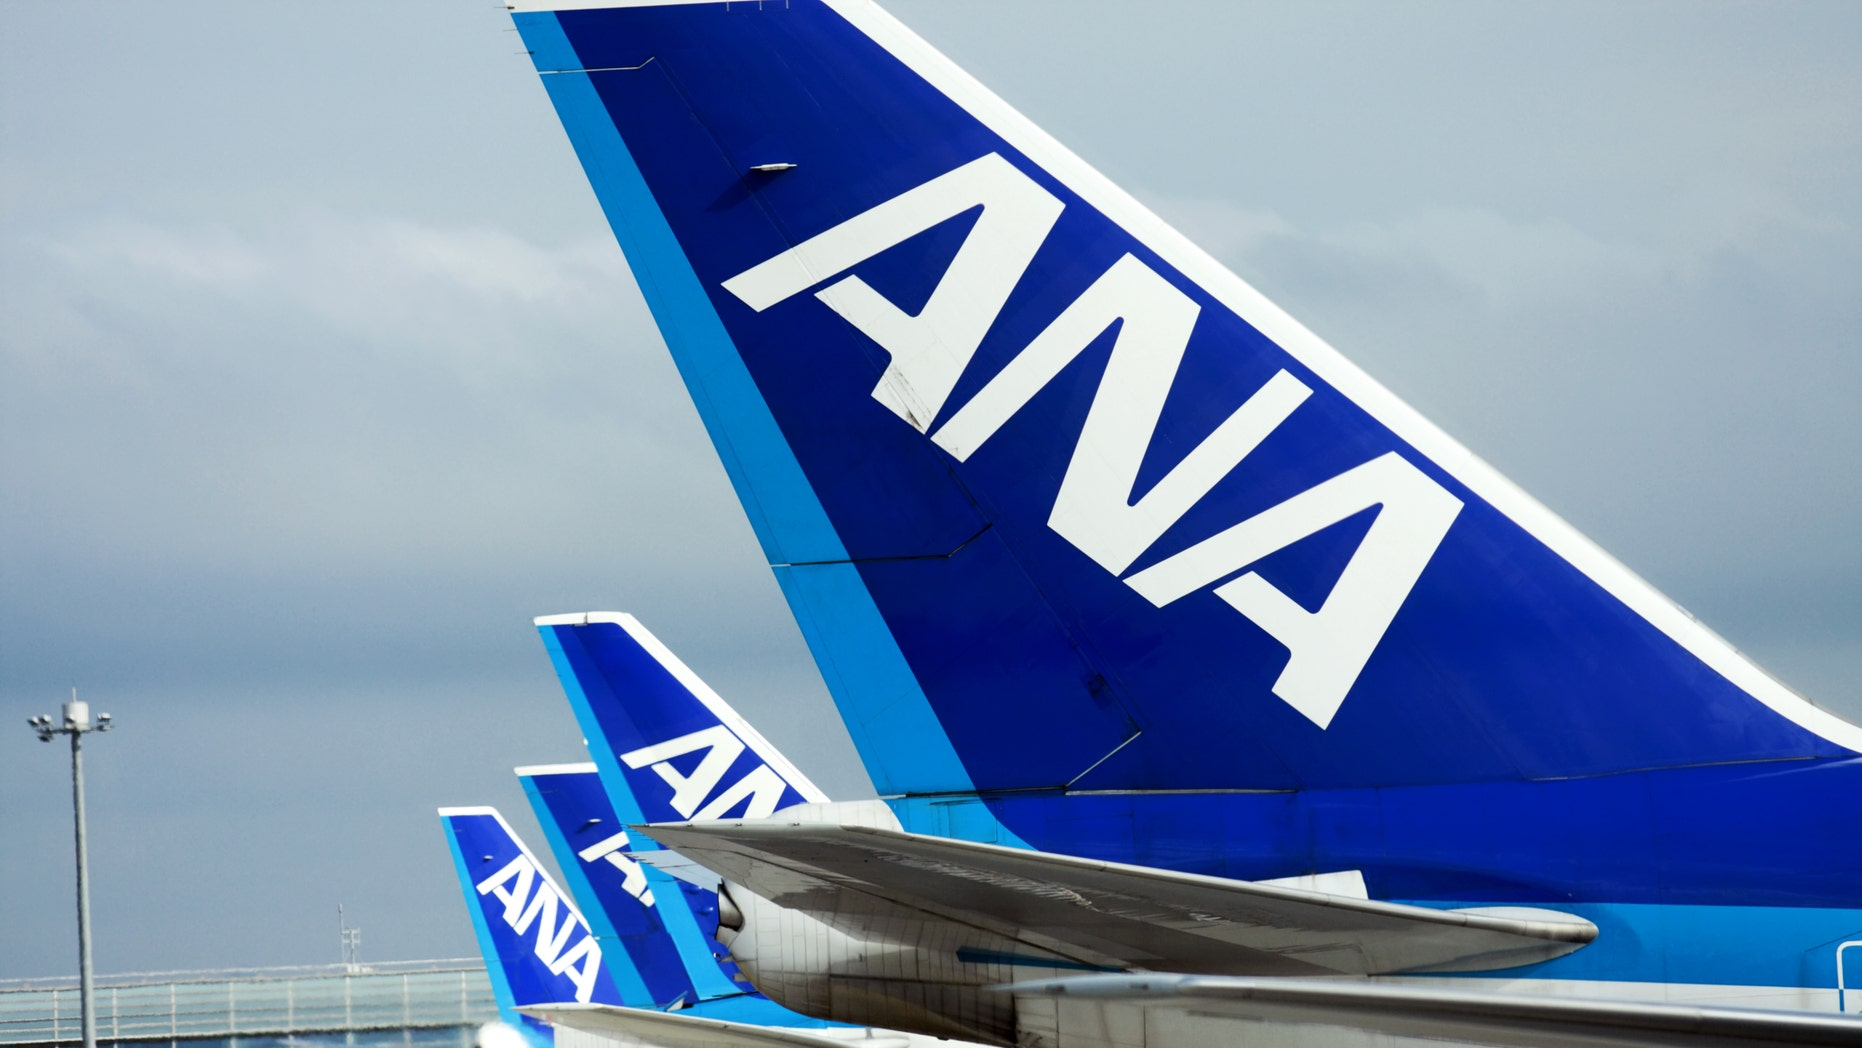 All Nippon Airways has completed a test flight of a new wide-body aircraft with its arrival in Hawaii.